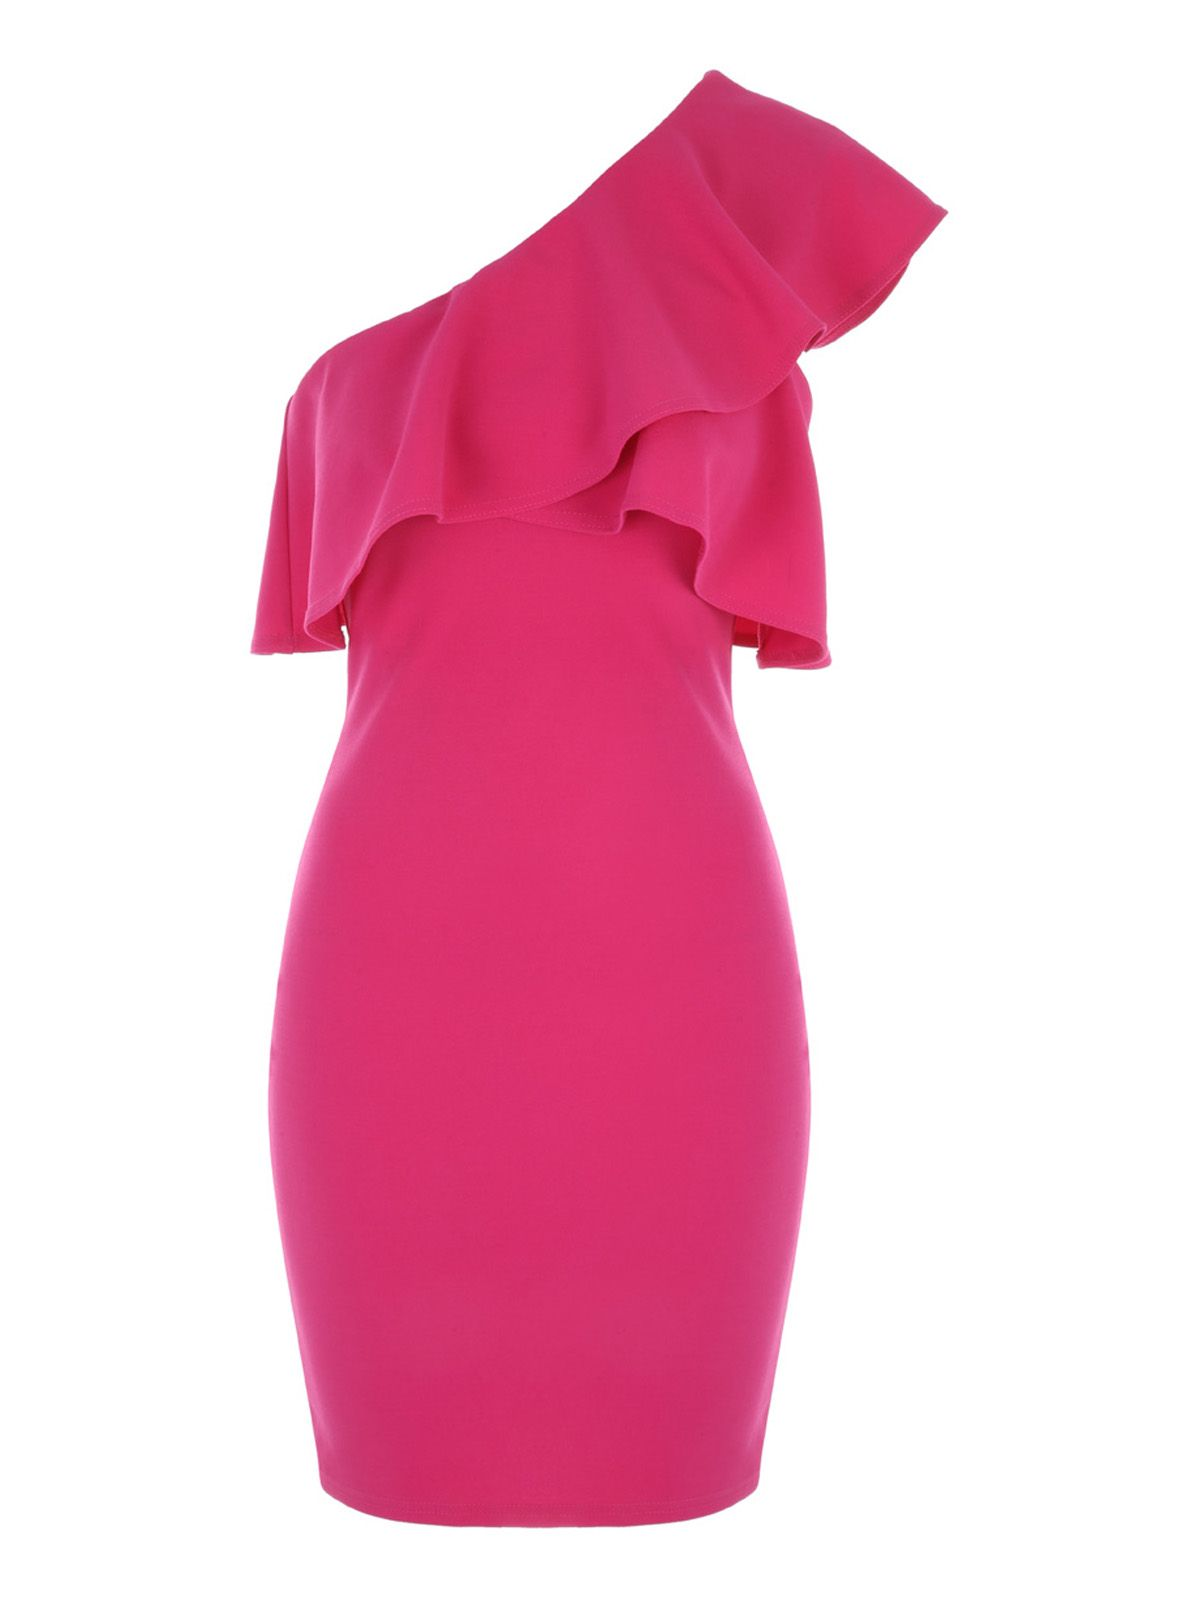 Jane Norman One Shoulder Ruffle Dress, Hot Pink